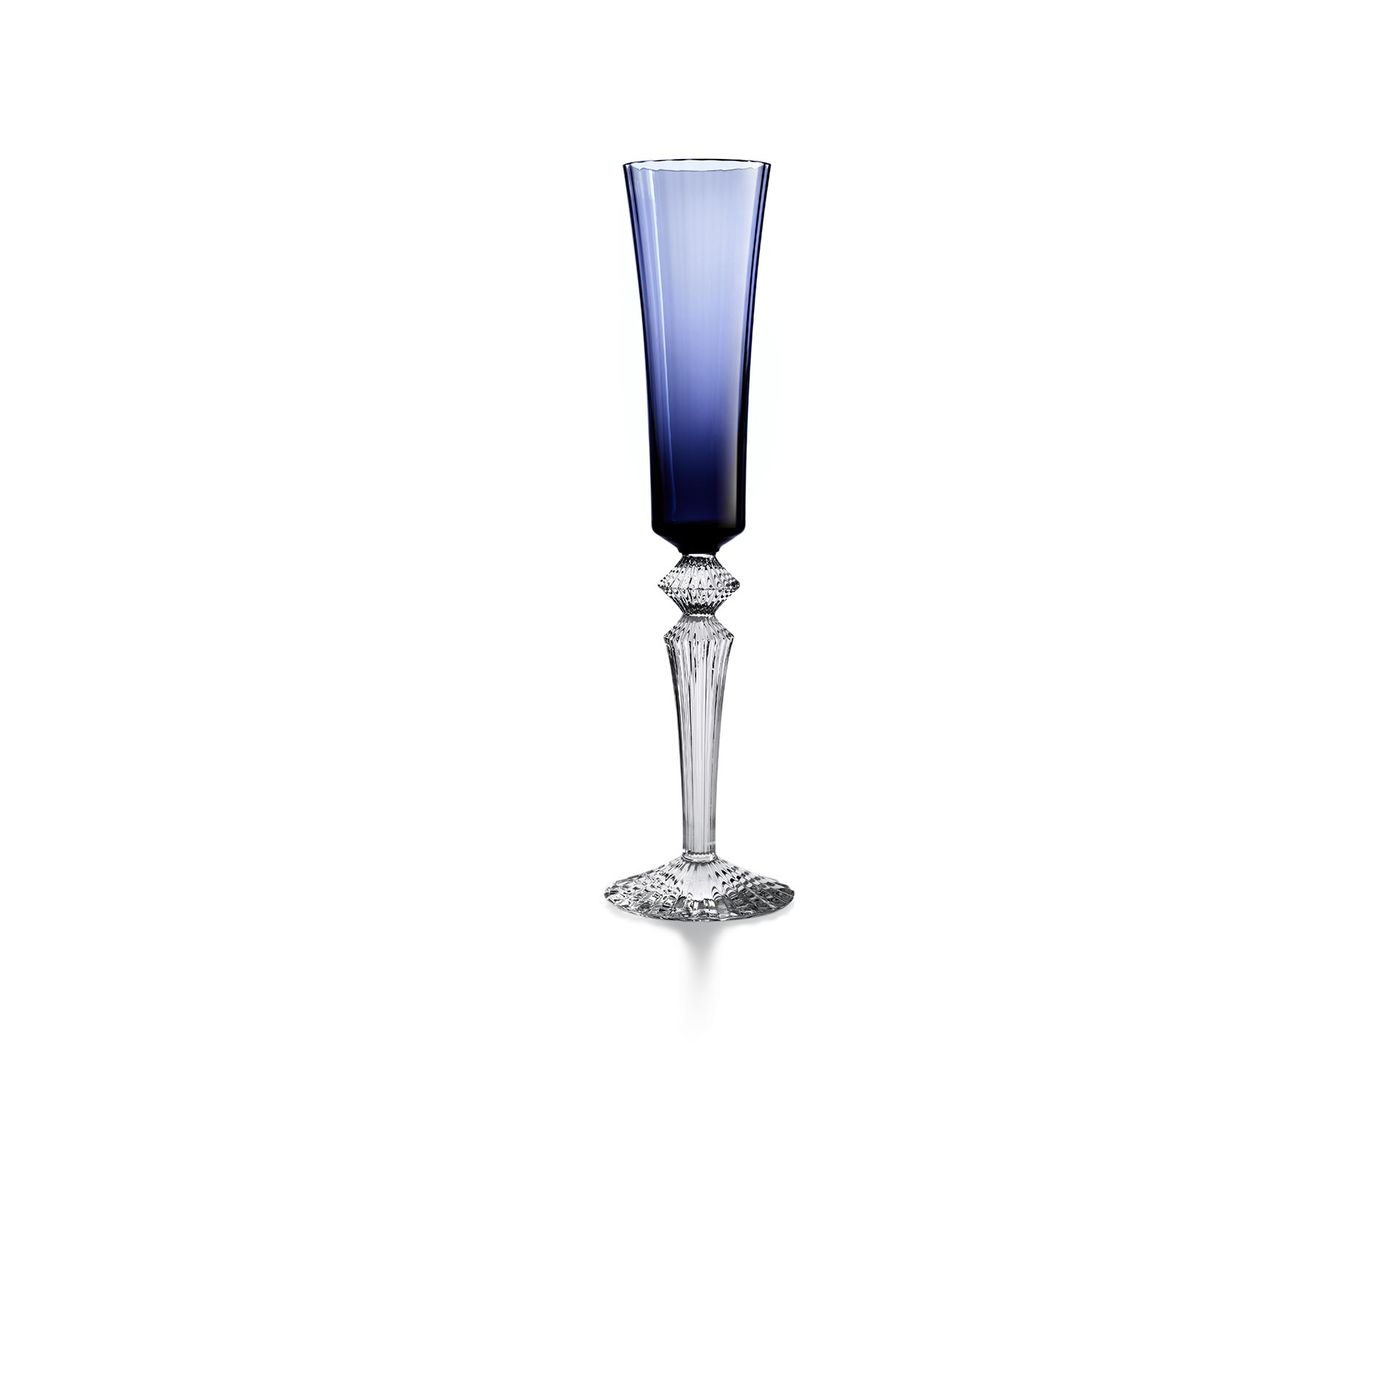 Mille-nuits-flutissimo-baccarat